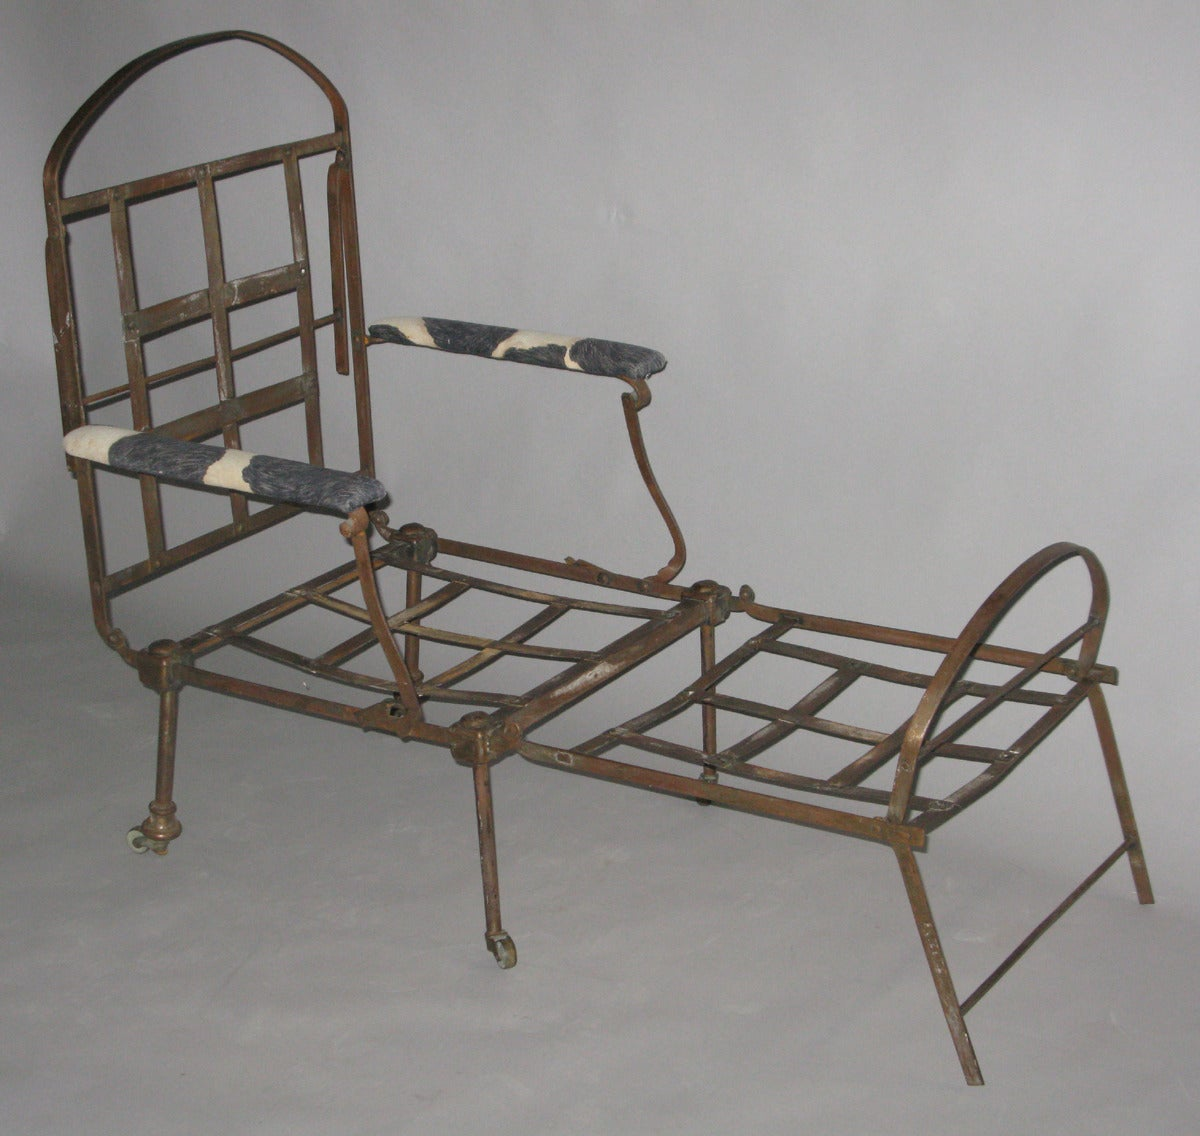 Directoire folding metal chaise longue at 1stdibs for Chaise directoire